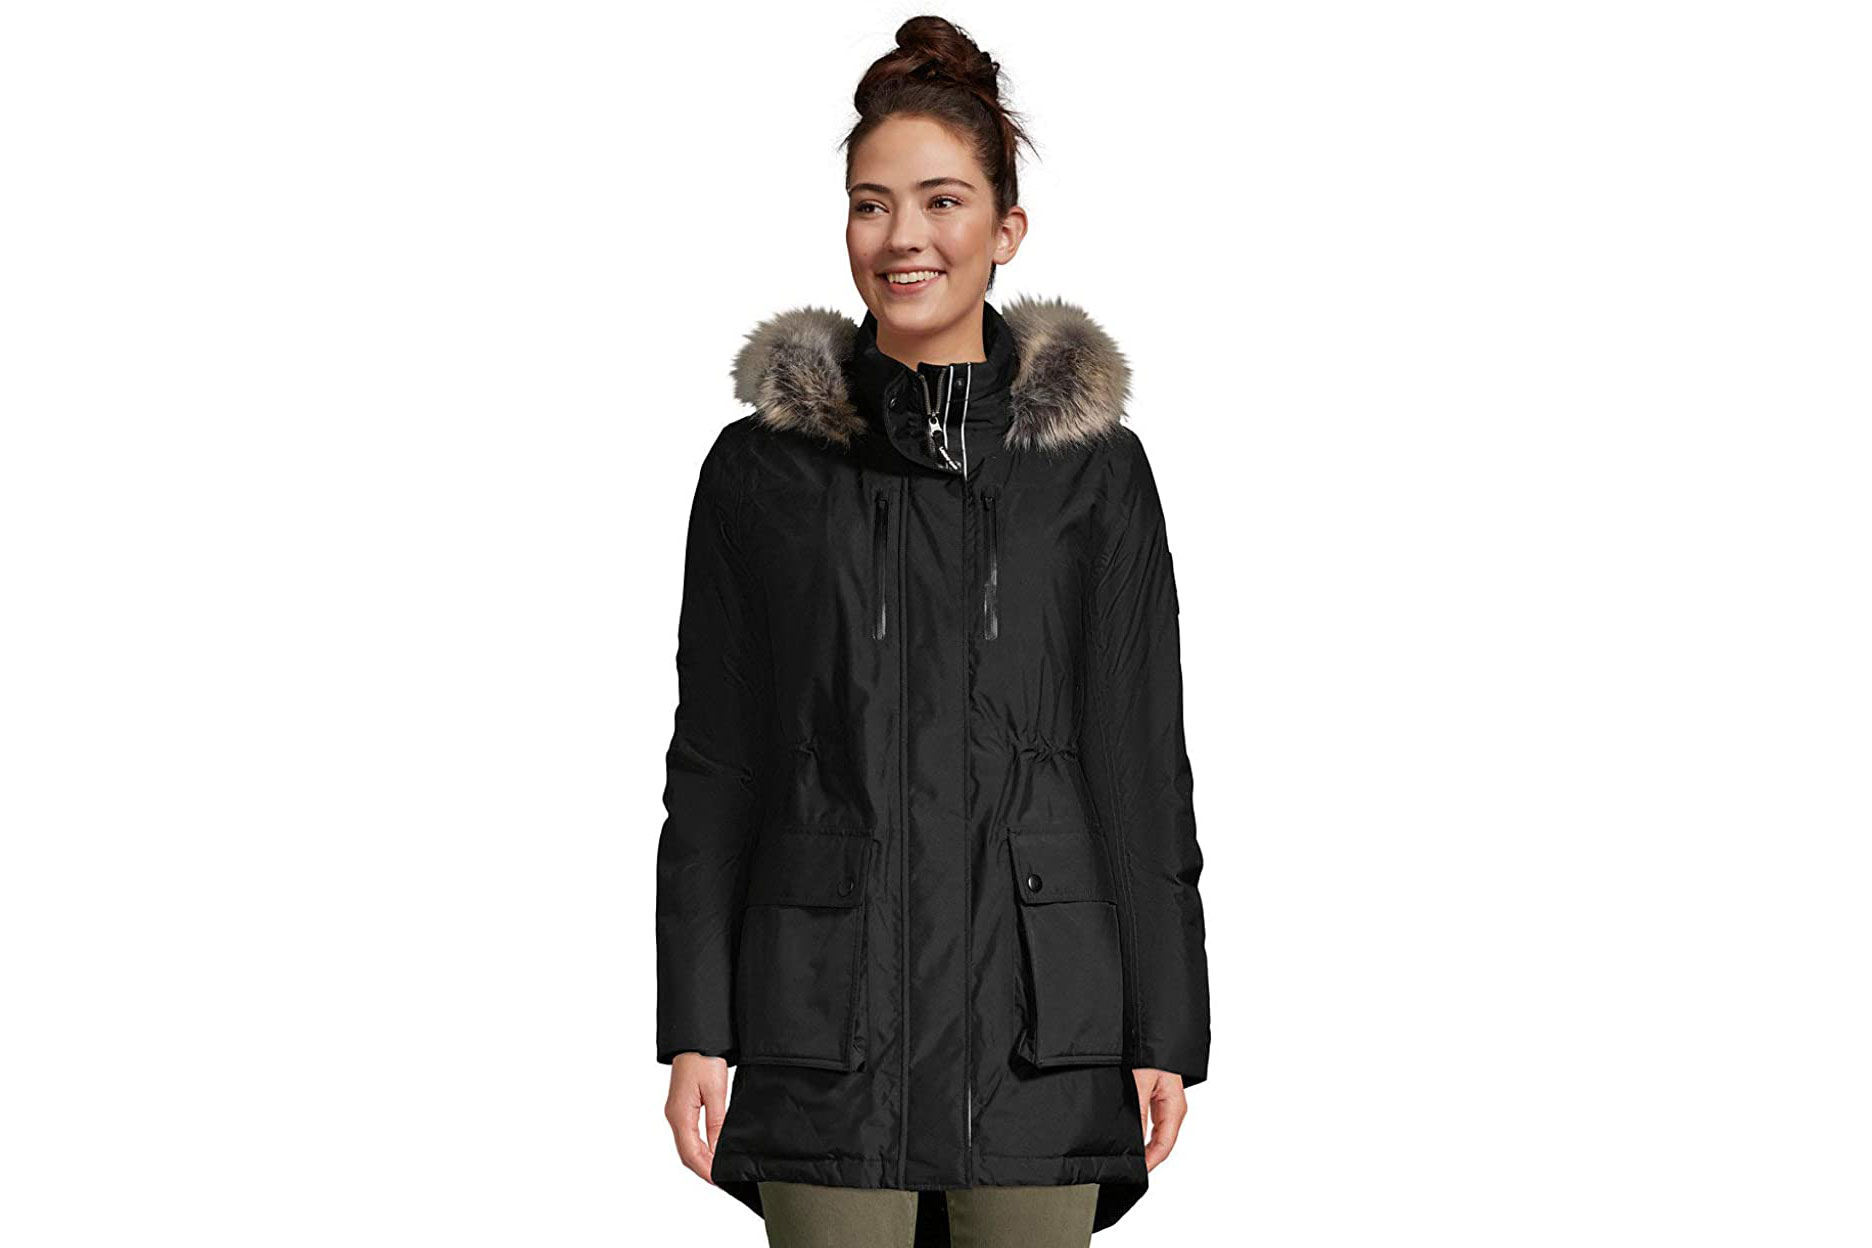 lands end oprah's favorite jacket cyber monday